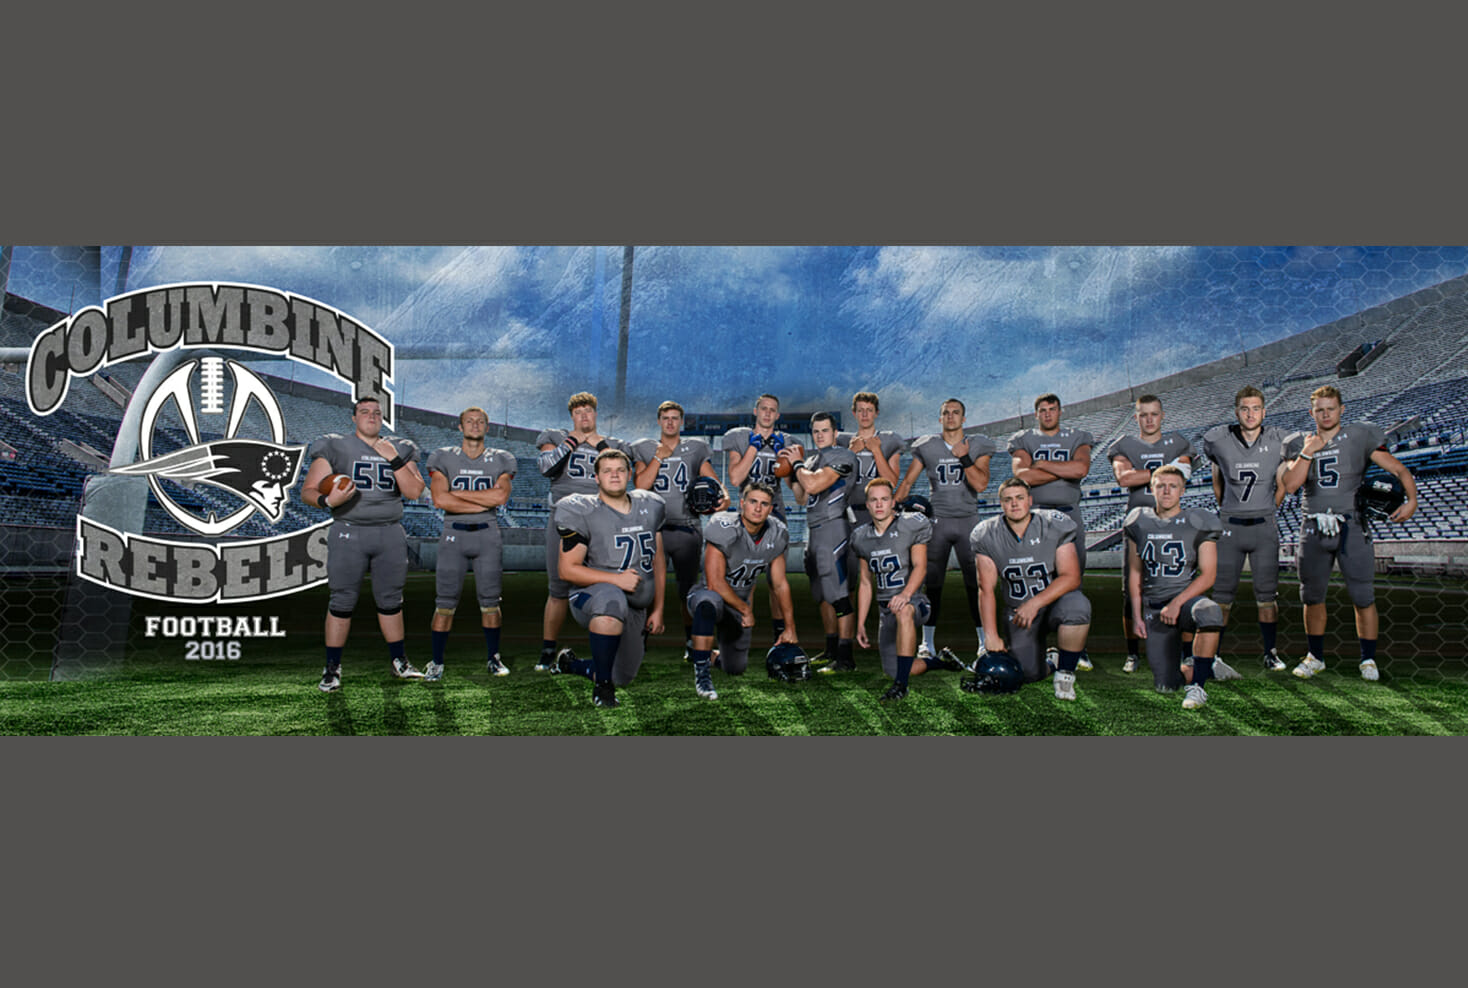 Columbine Football senior banner